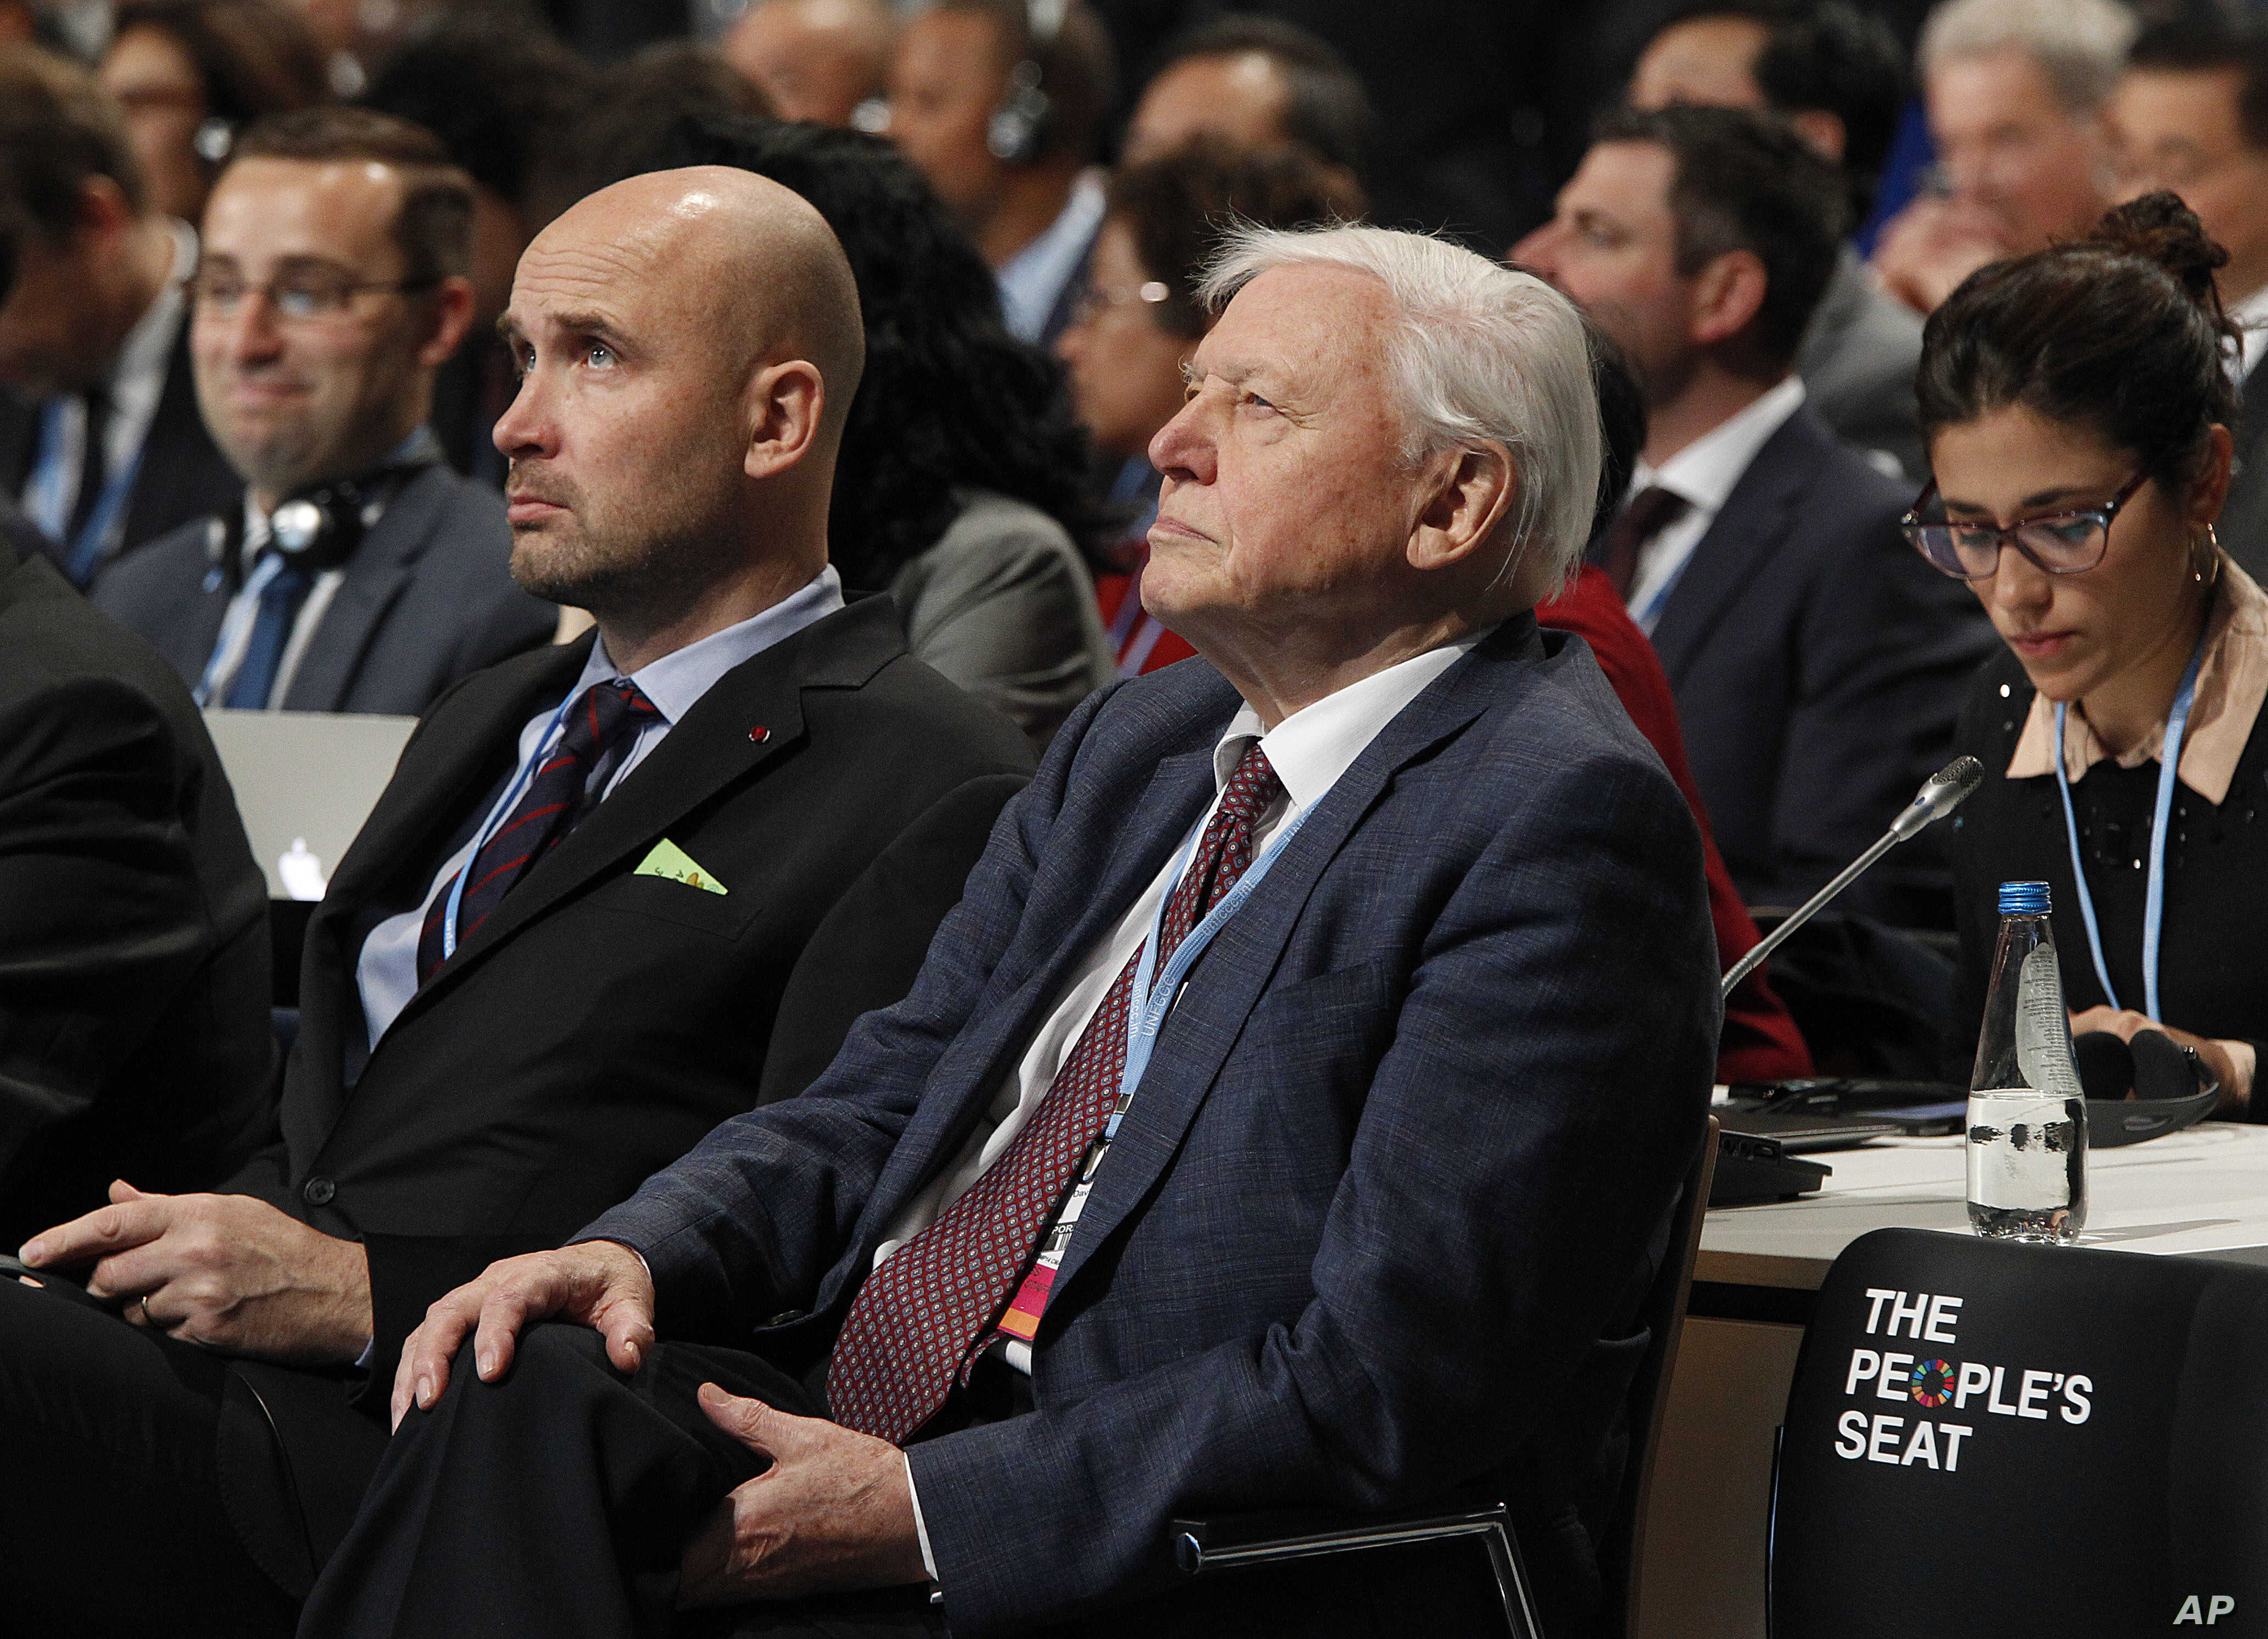 Natural historian Sir David Attenborough, second right, listens to speeches during the opening of COP24 UN Climate Change Conference 2018 in Katowice, Poland, Dec. 3, 2018.